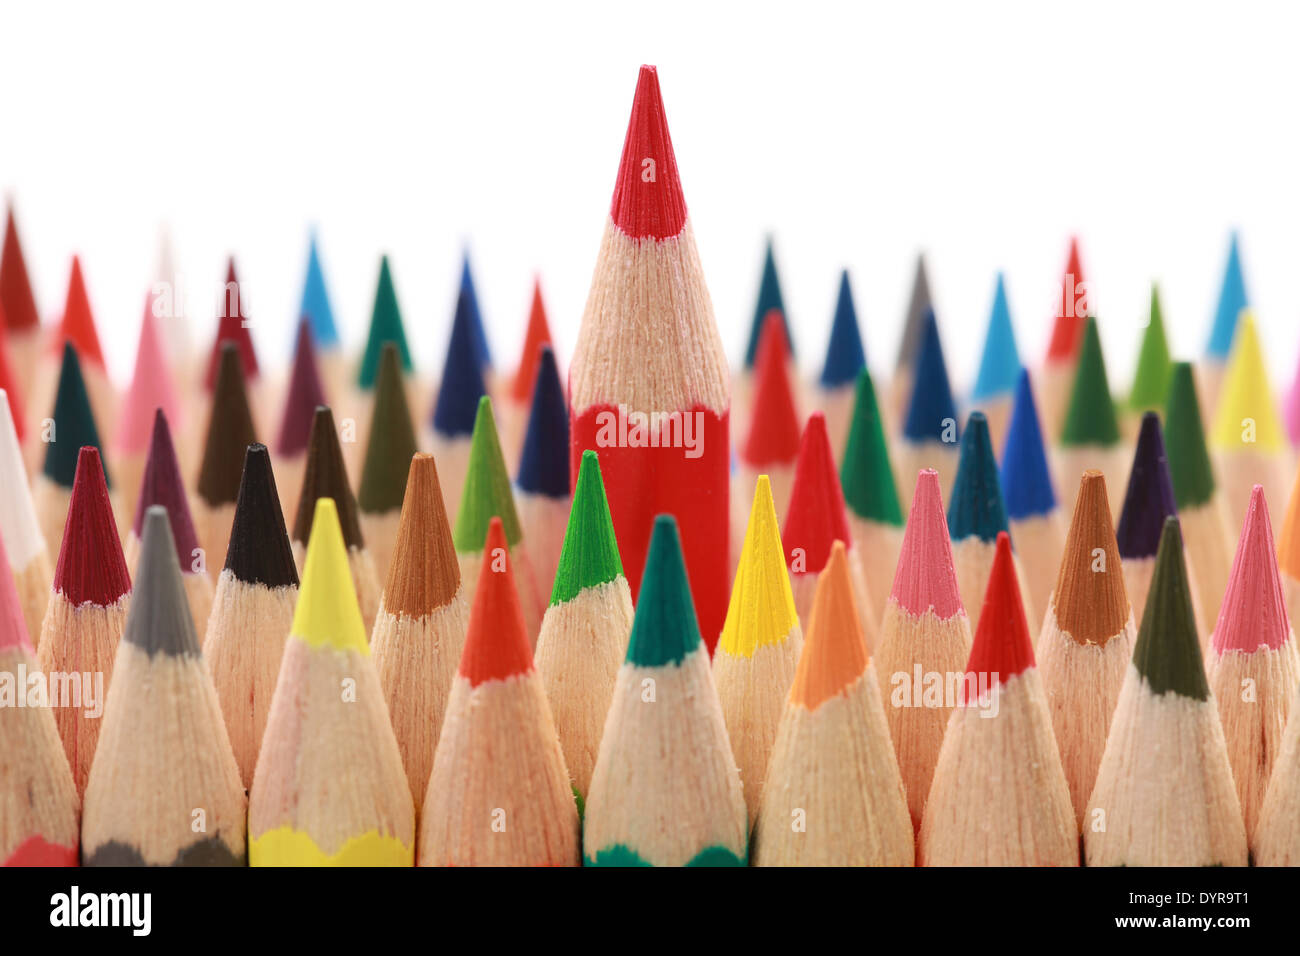 Business concepts: red crayon standing out from the crowd Stock Photo